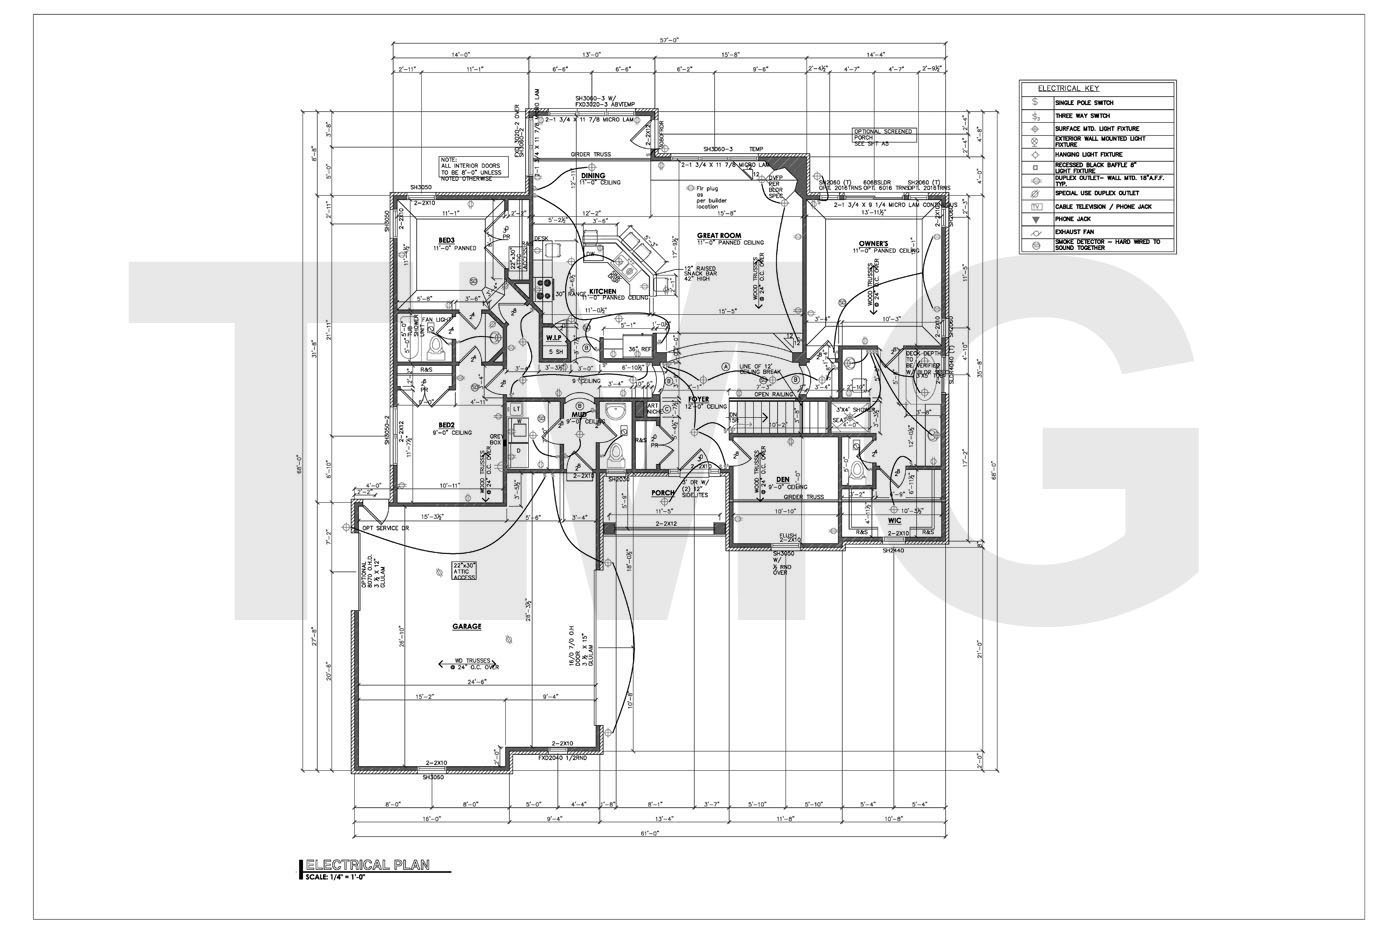 house wiring plan india